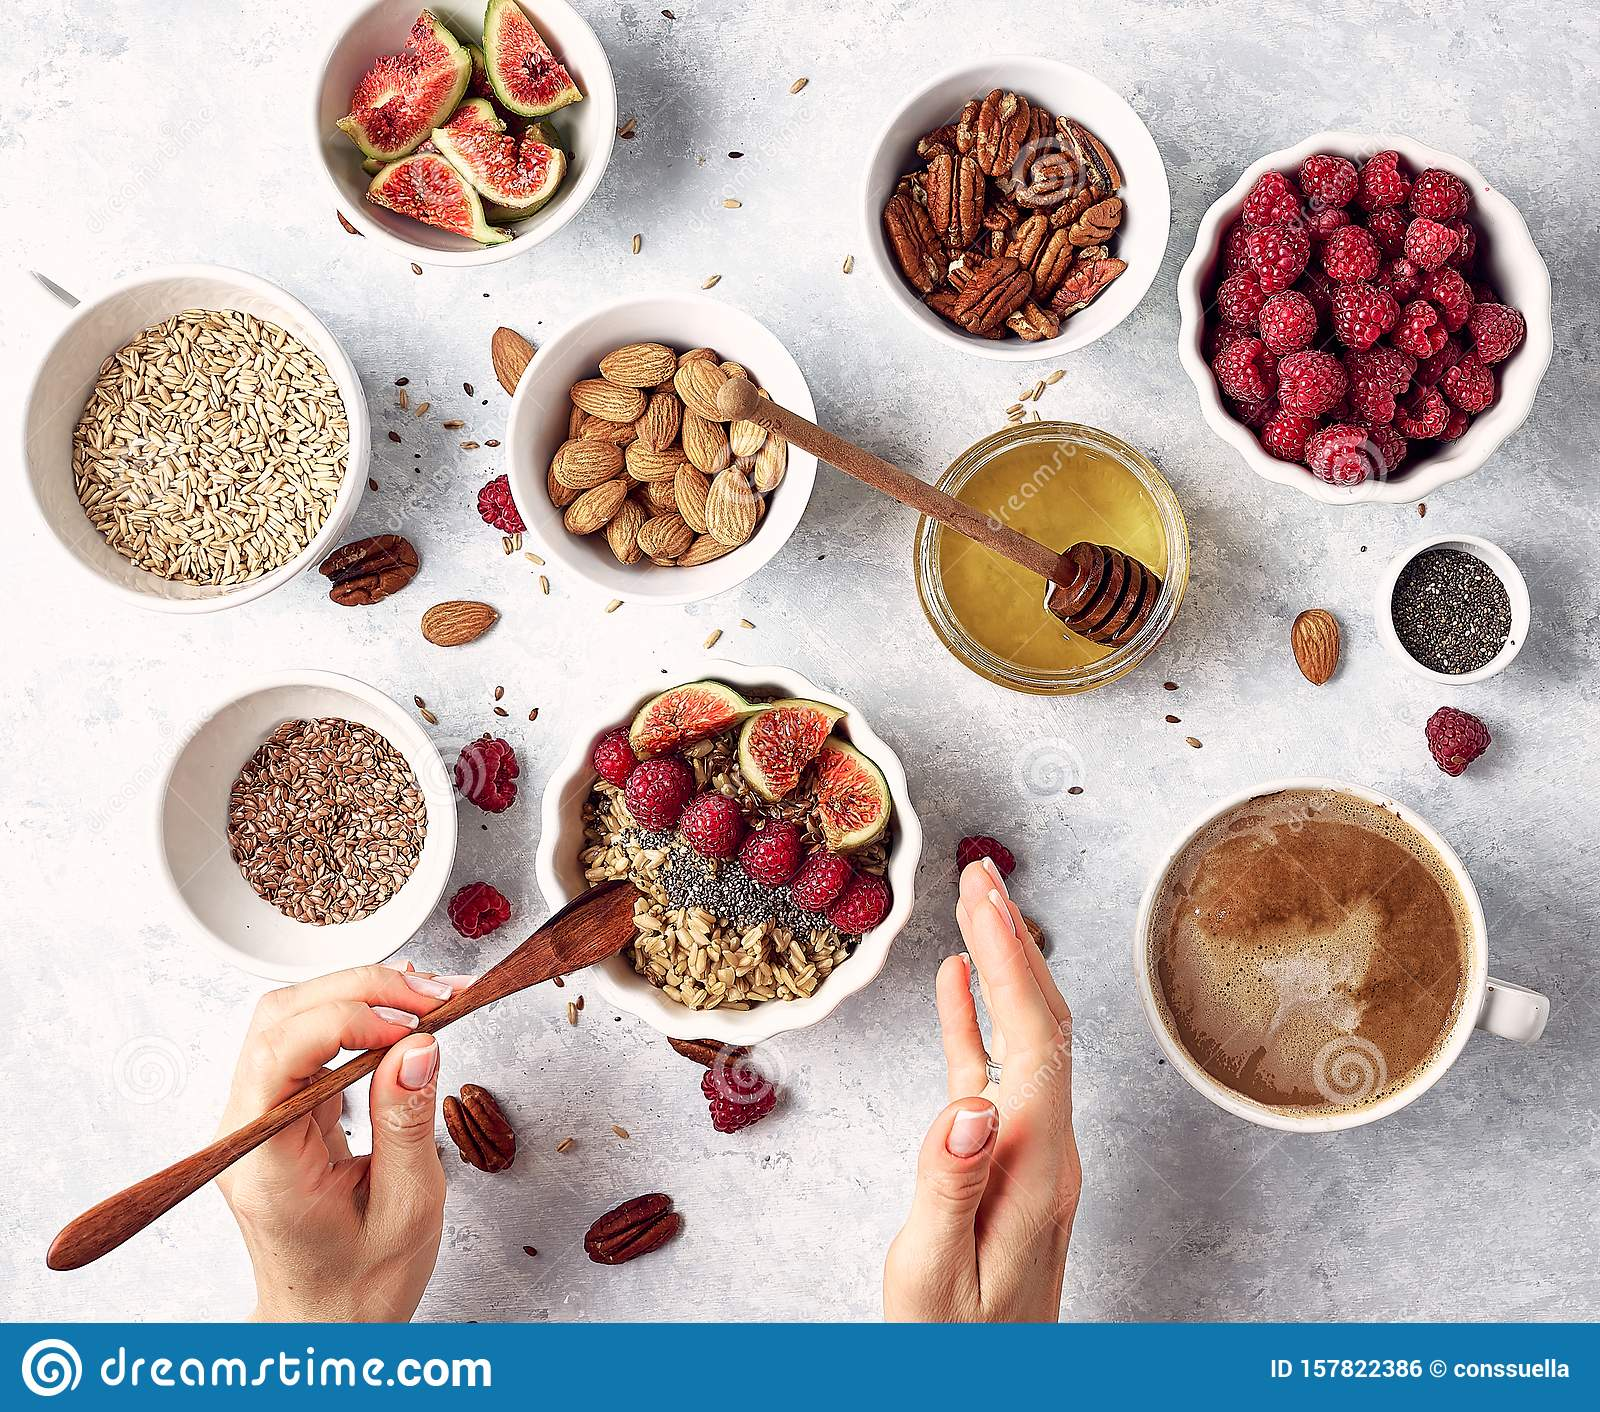 Healthy oatmeal breakfast with raspberries and finns, chia and flax seeds and honey, pattern, top visas, good morning concept